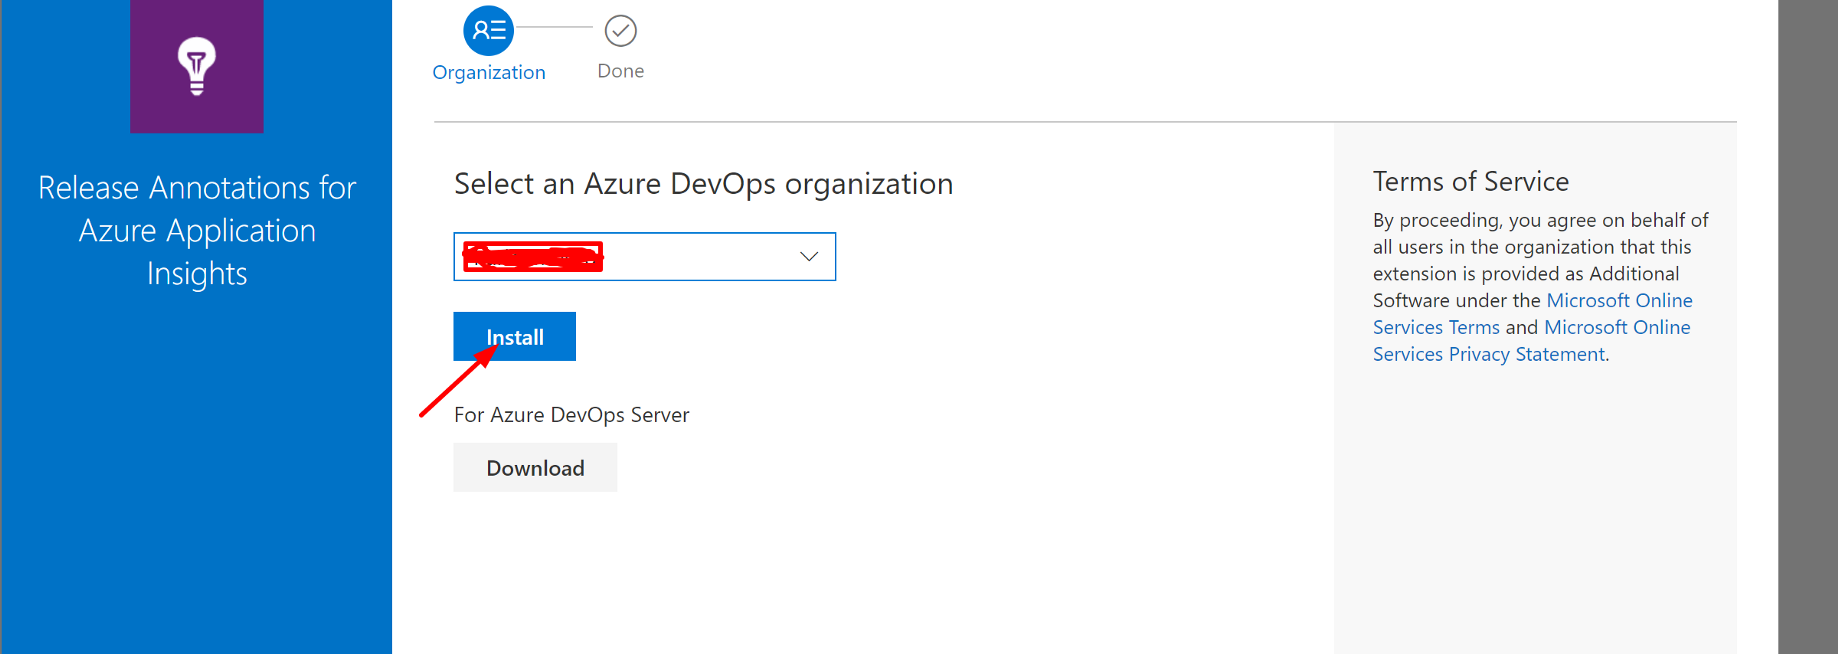 Azure Devops — Using the Application Insights release annotation task